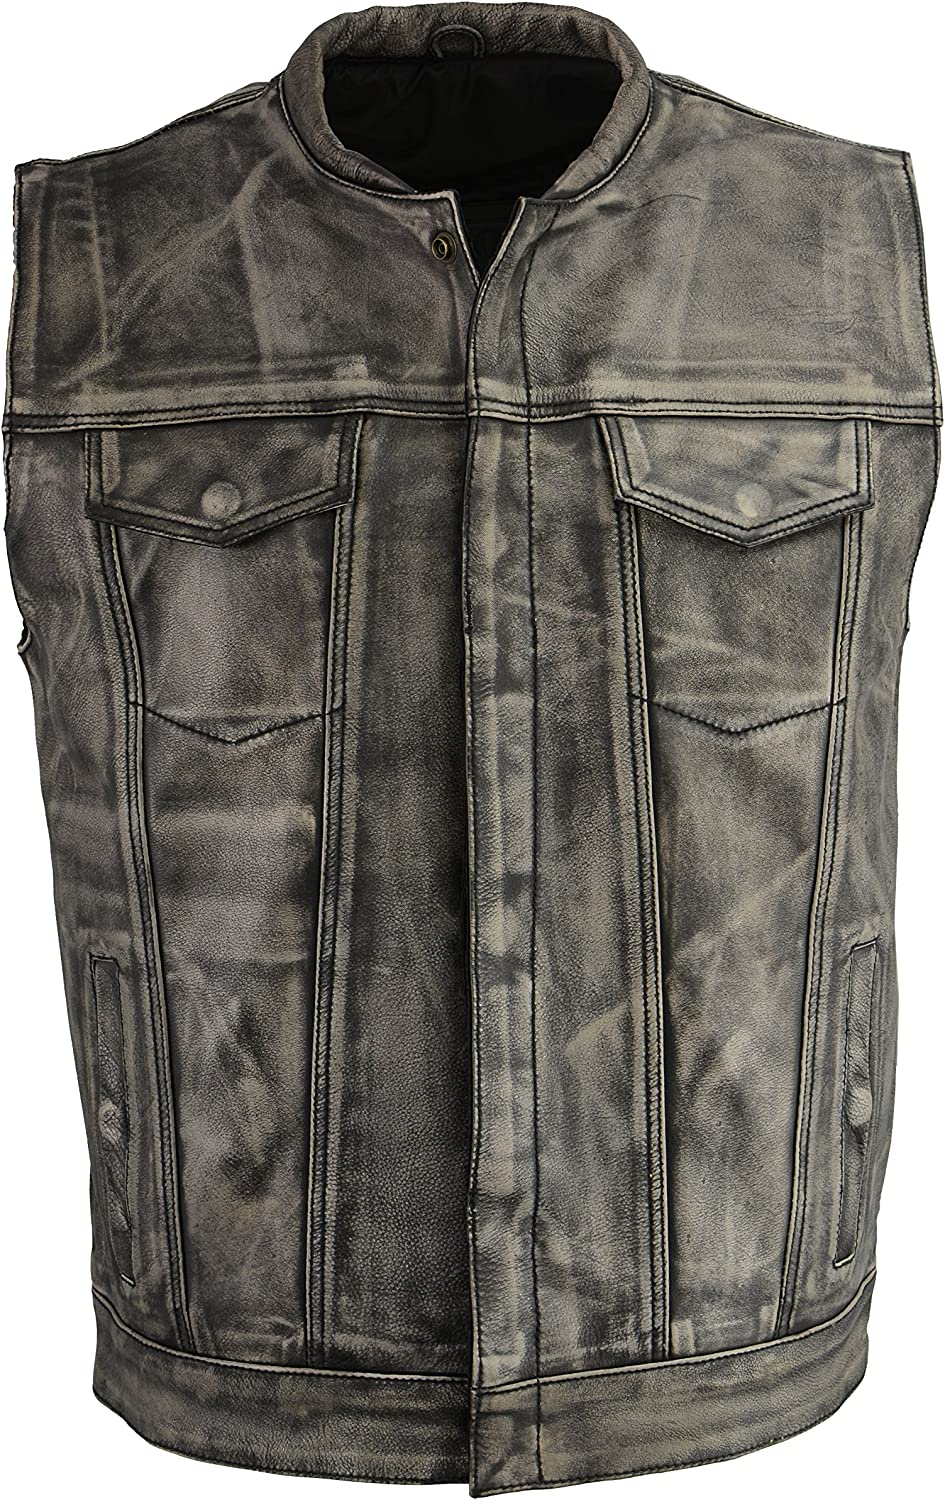 M Boss Motorcycle Apparel BOS13502 Men's Distressed Grey Leather Motorcycle Vest - X-Large